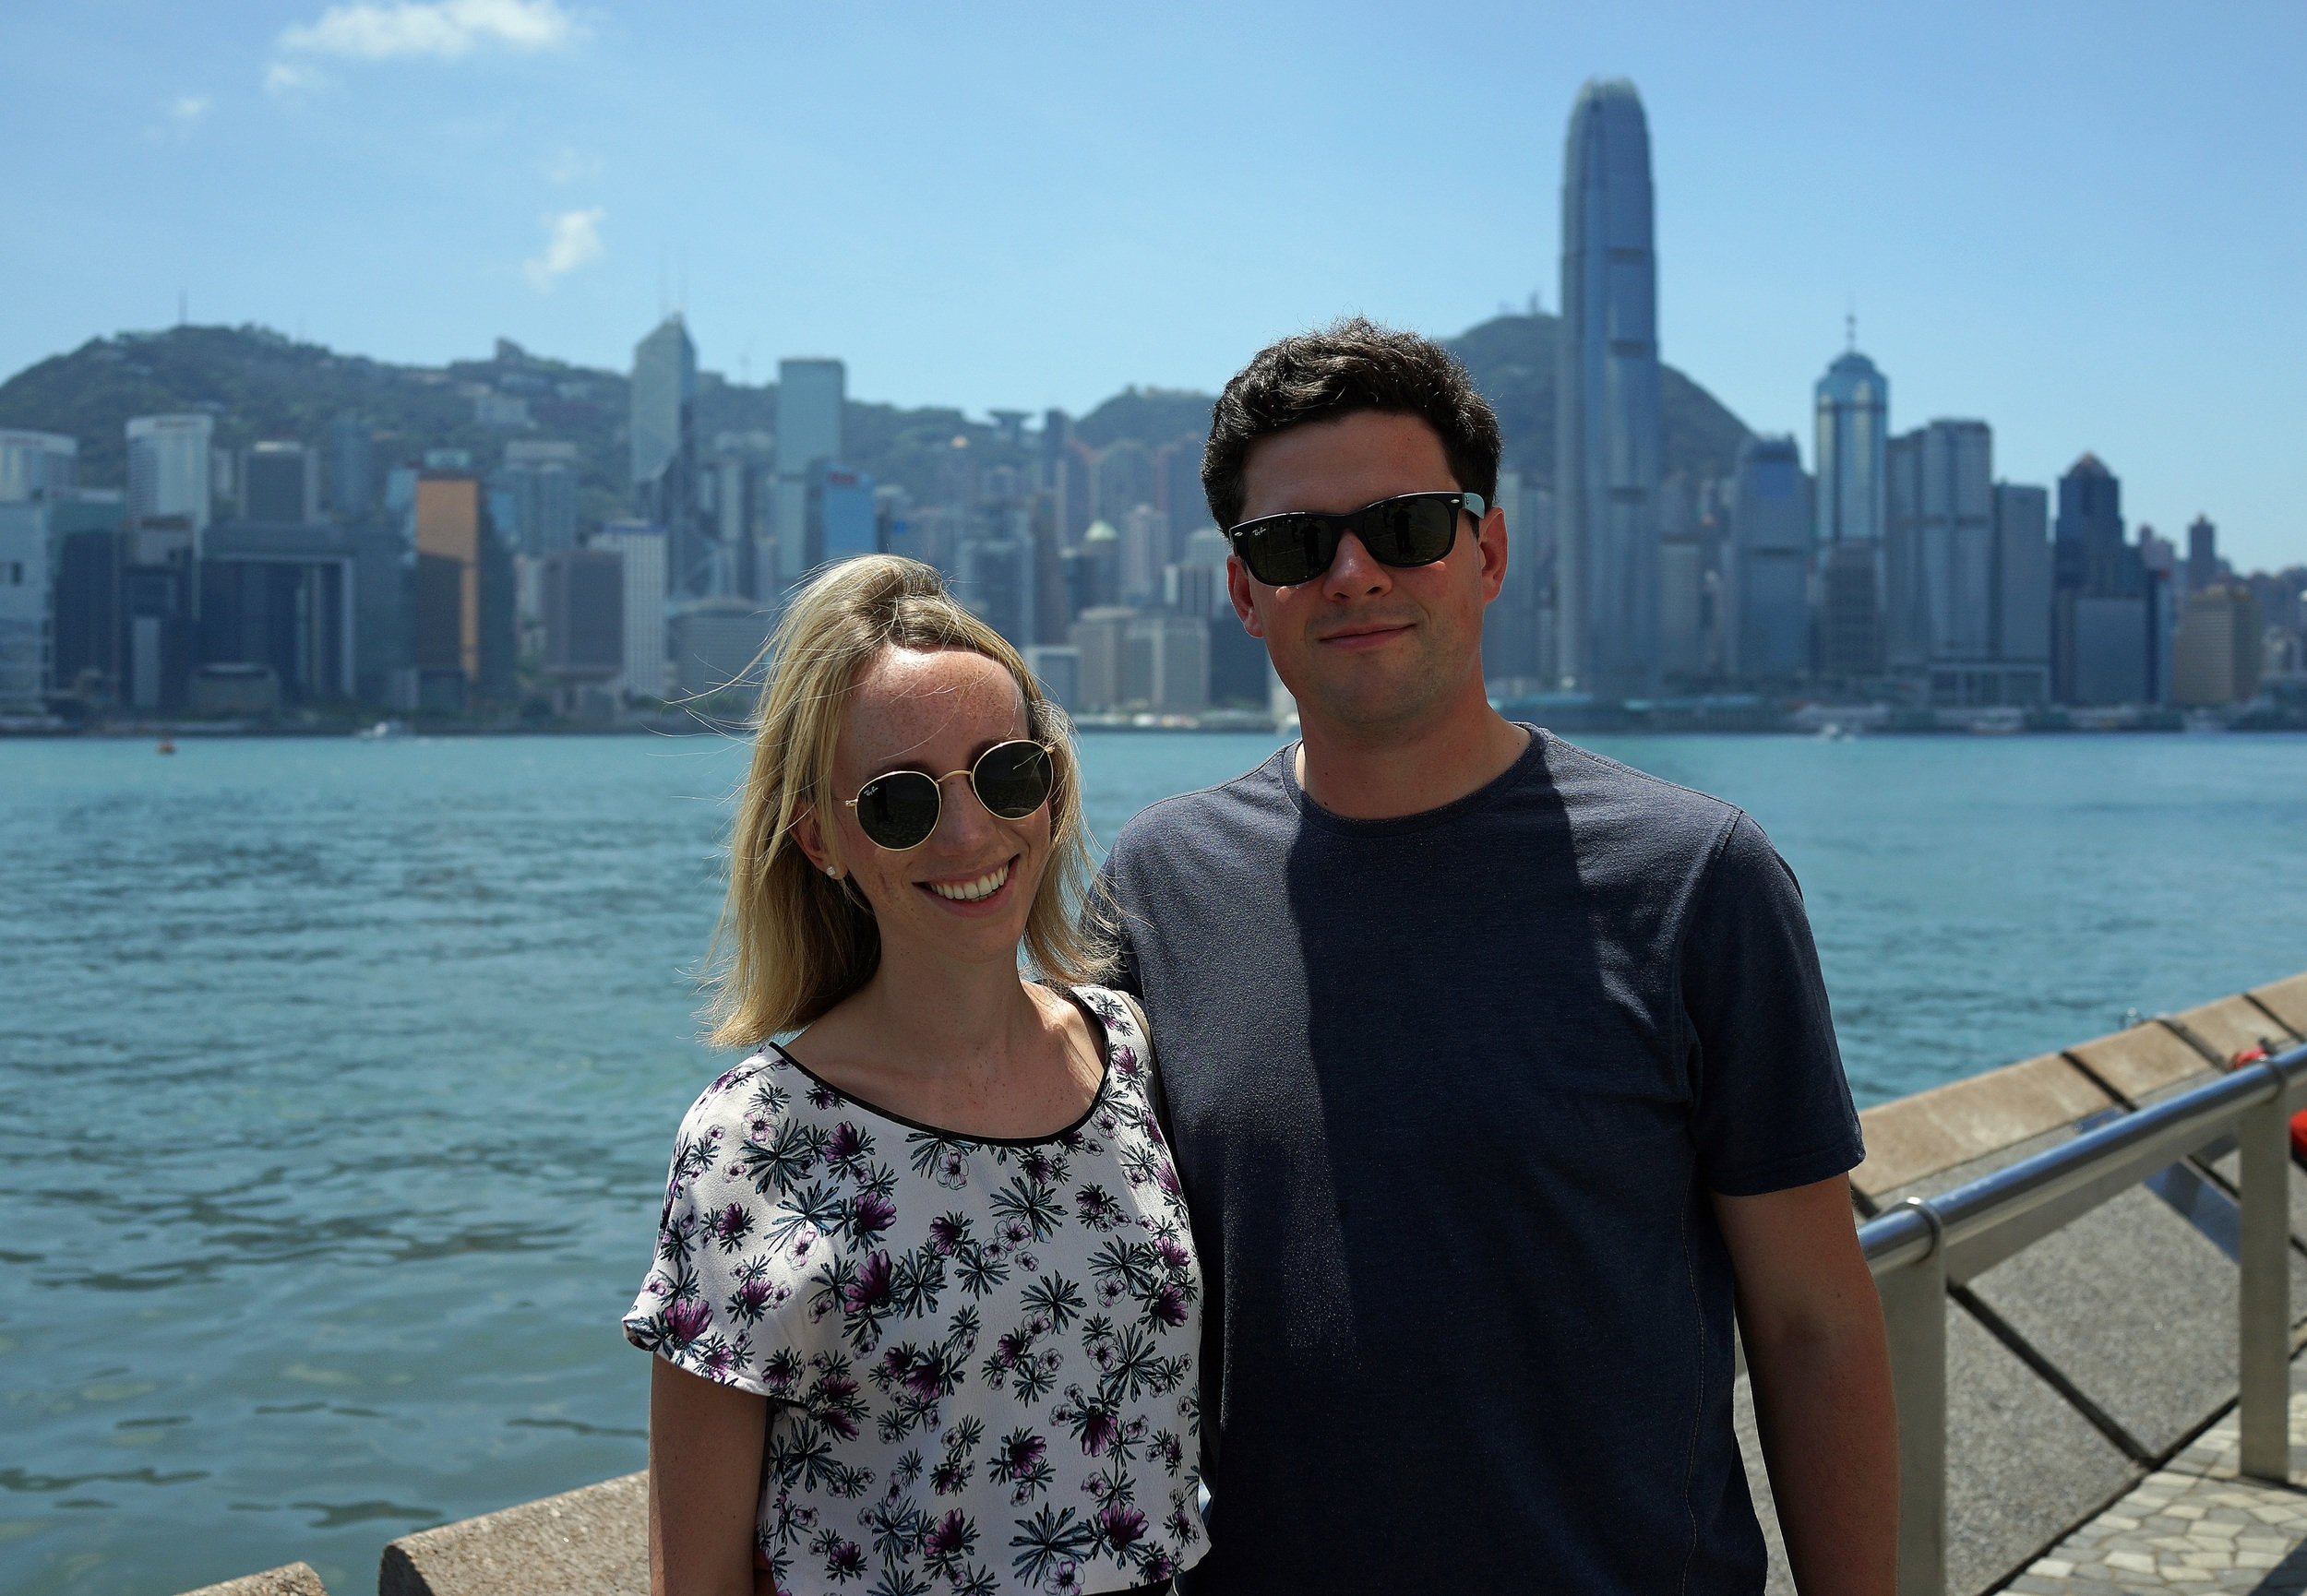 Ceci and Rory from the UK enjoying the awesome view of Hong Kong Island from TST Promenade. -